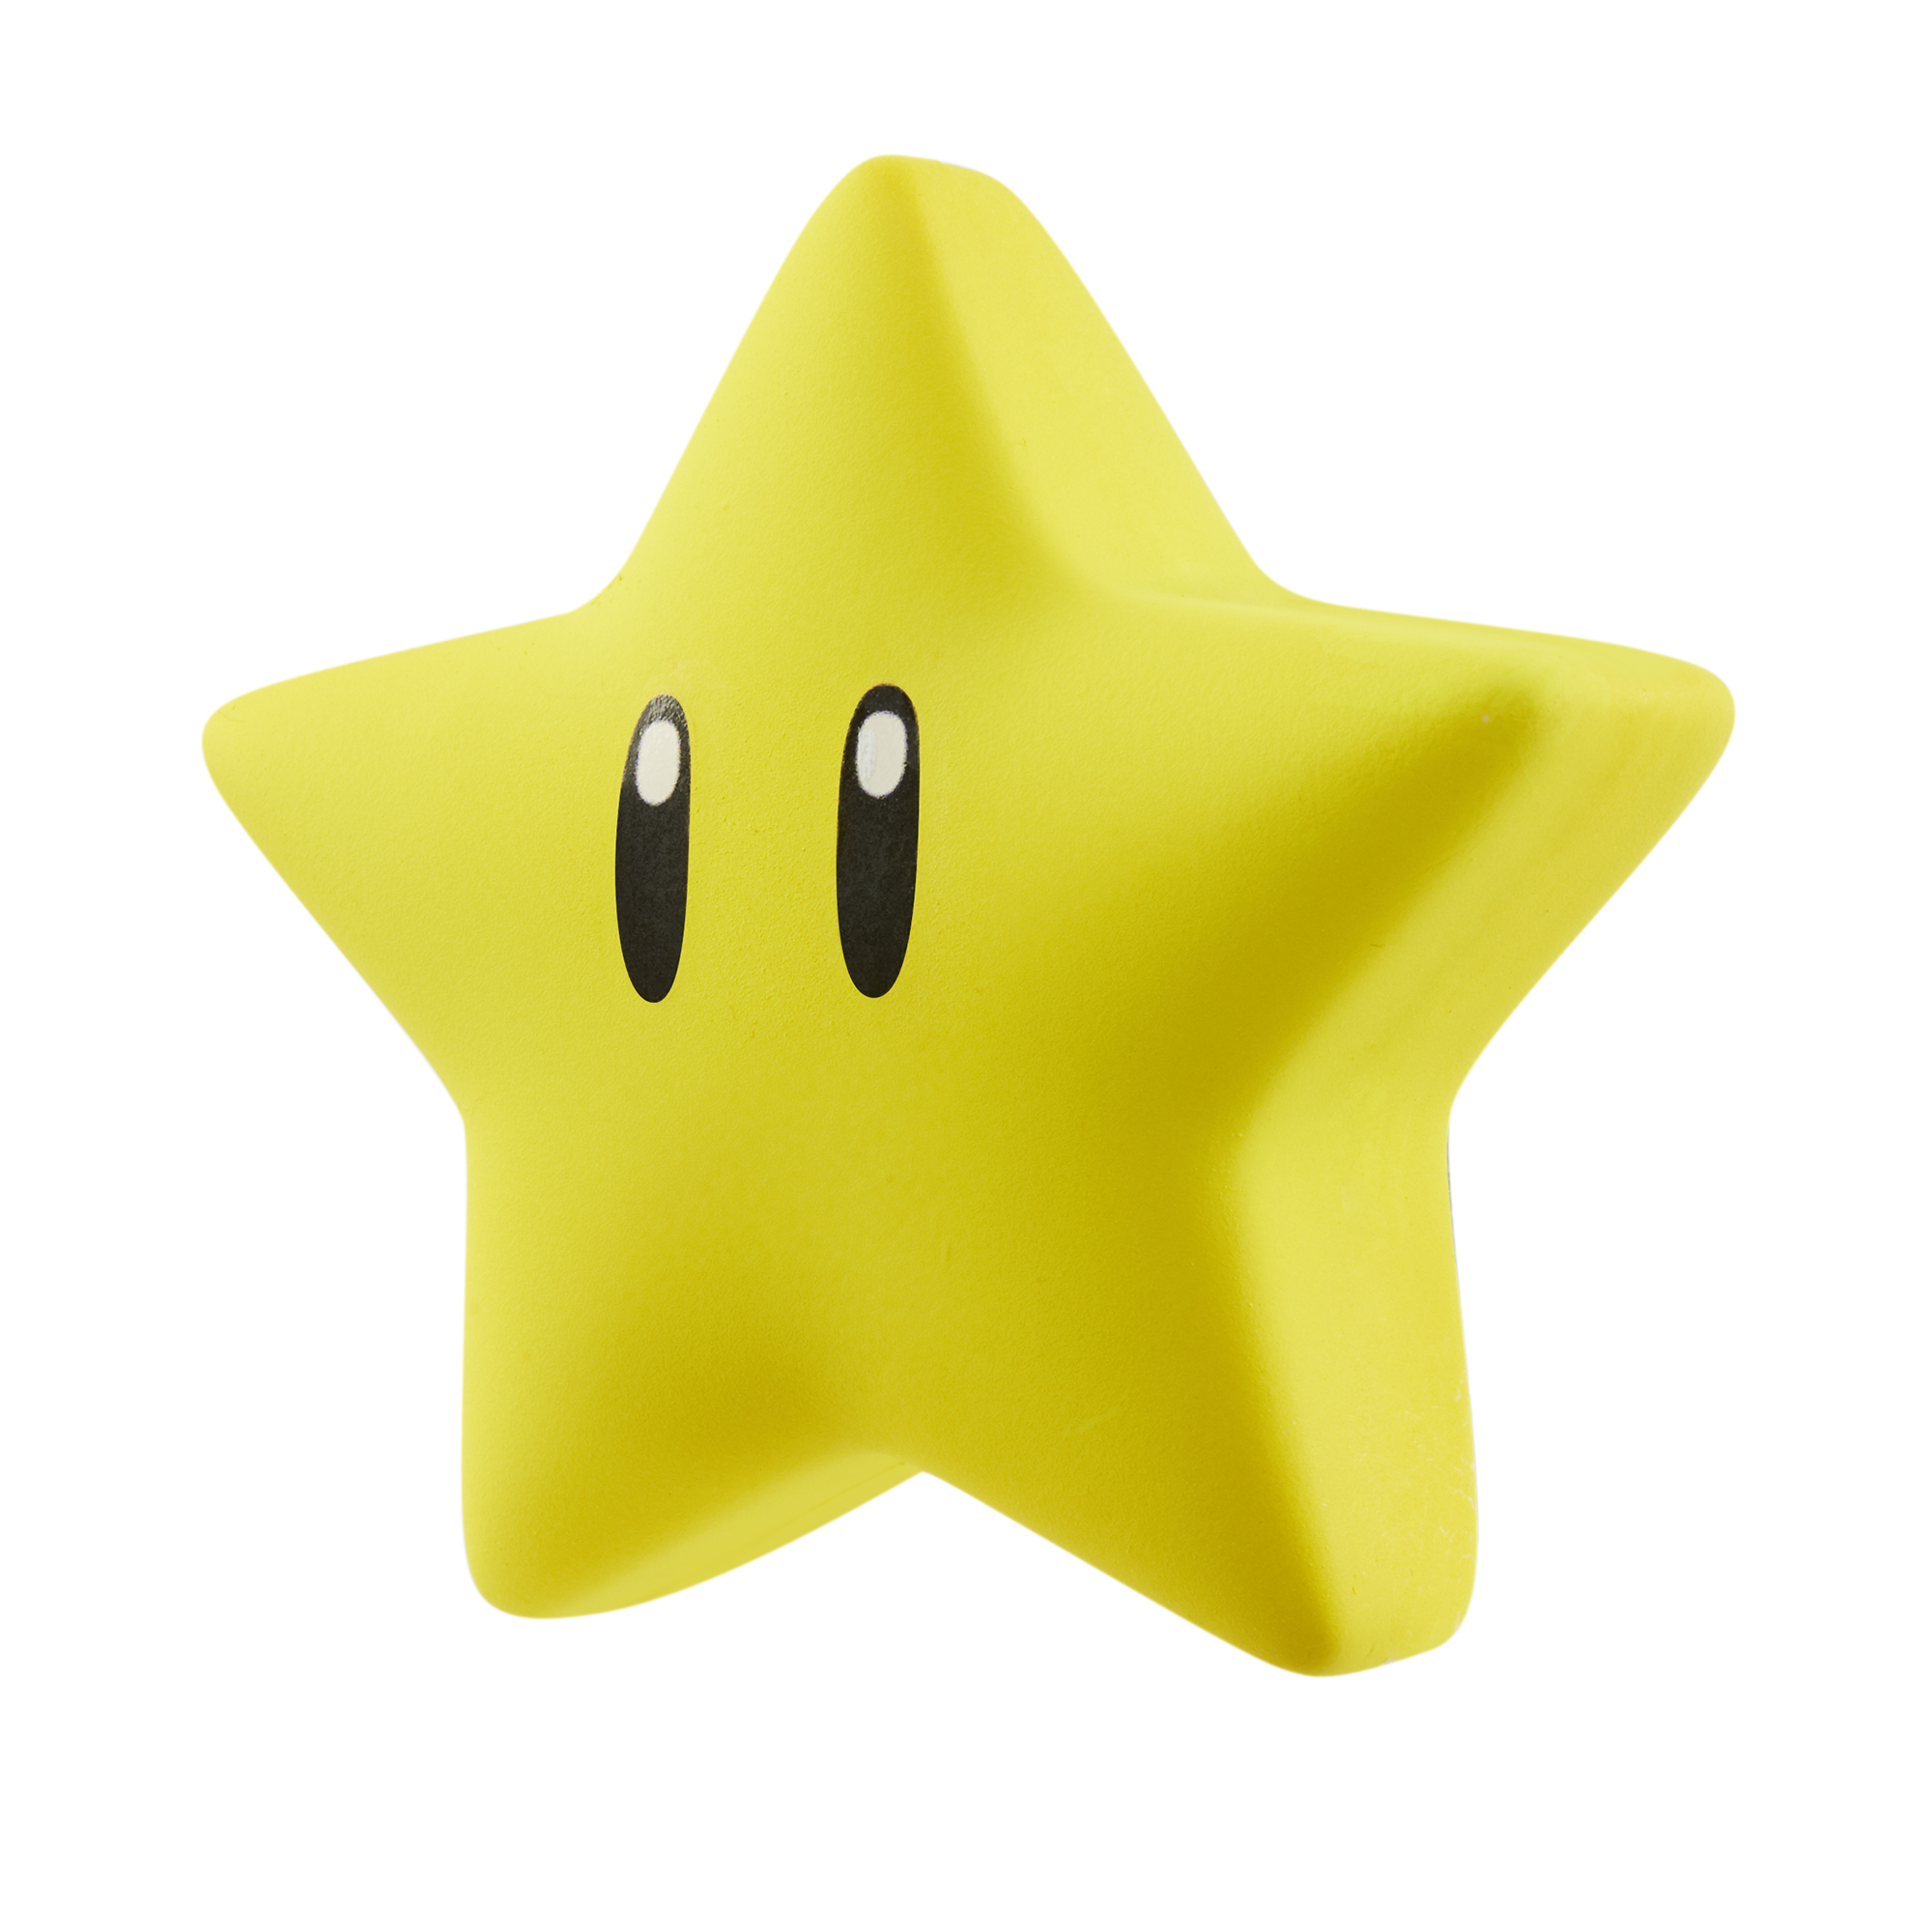 Super Mario Squish Dee-Lish Star